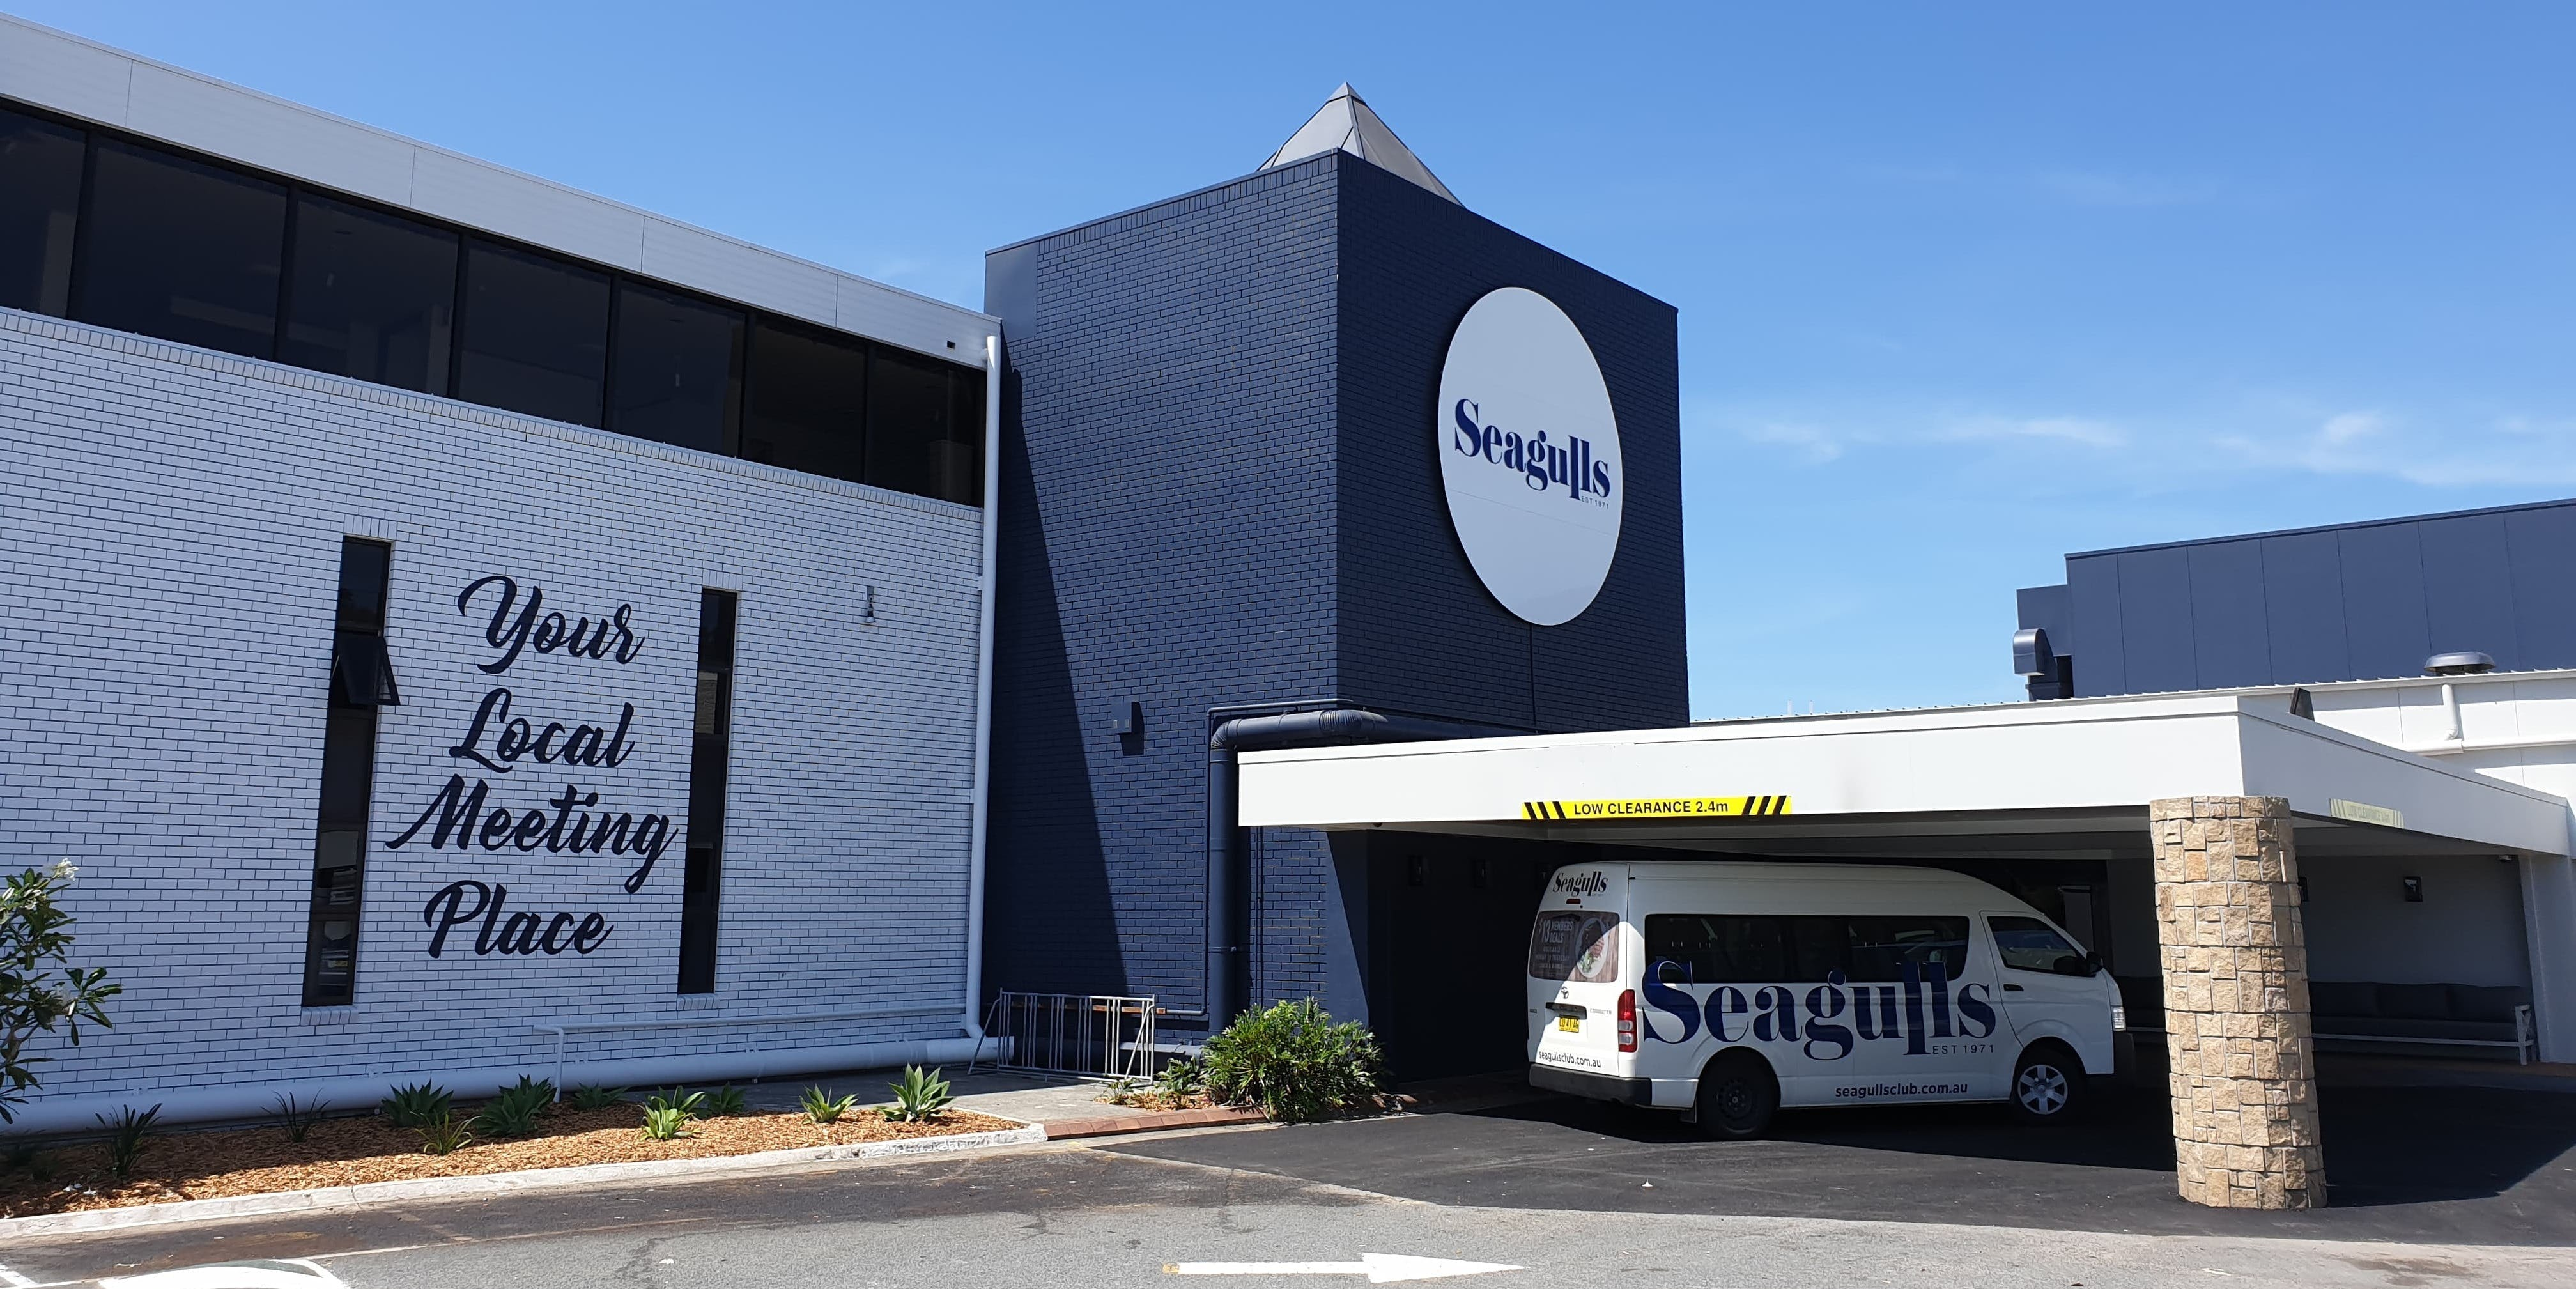 Seagulls Club - Geraldton Accommodation